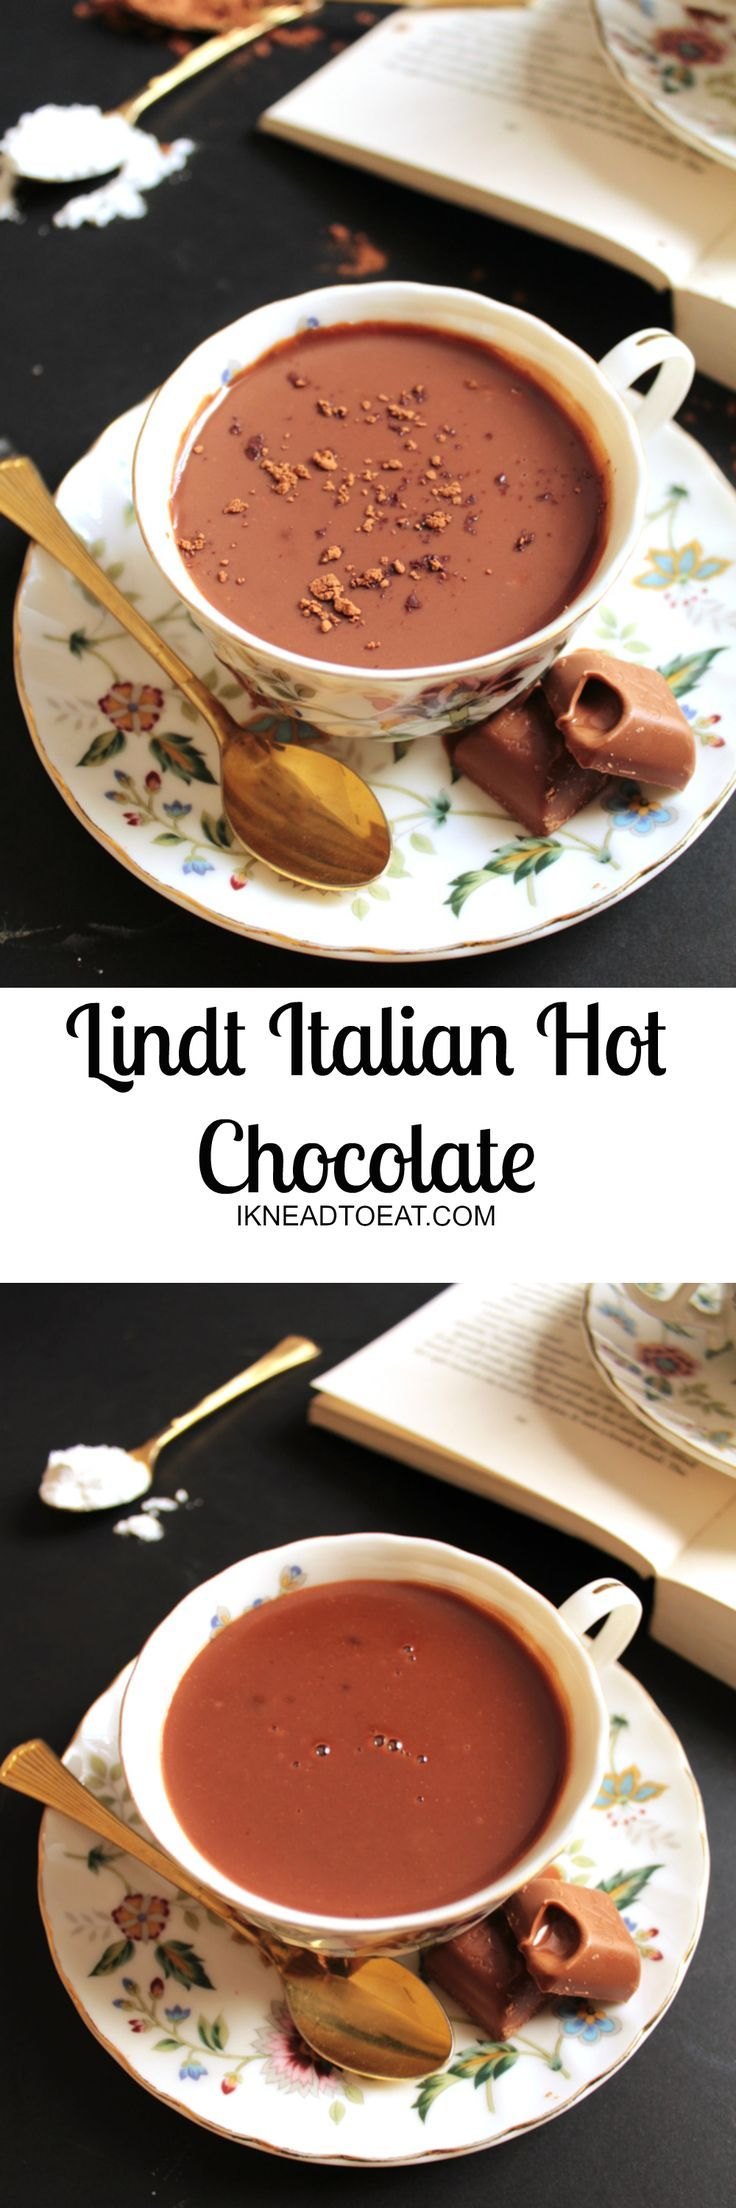 Deliciously thick and creamy Italian hot chocolate ready in just FIVE minutes using only FIVE ingredients. P.S. There's a whole bar of Lindt chocolate in it. Yum! (scheduled via http://www.tailwindapp.com?utm_source=pinterest&utm_medium=twpin&utm_content=post16208310&utm_campaign=scheduler_attribution)